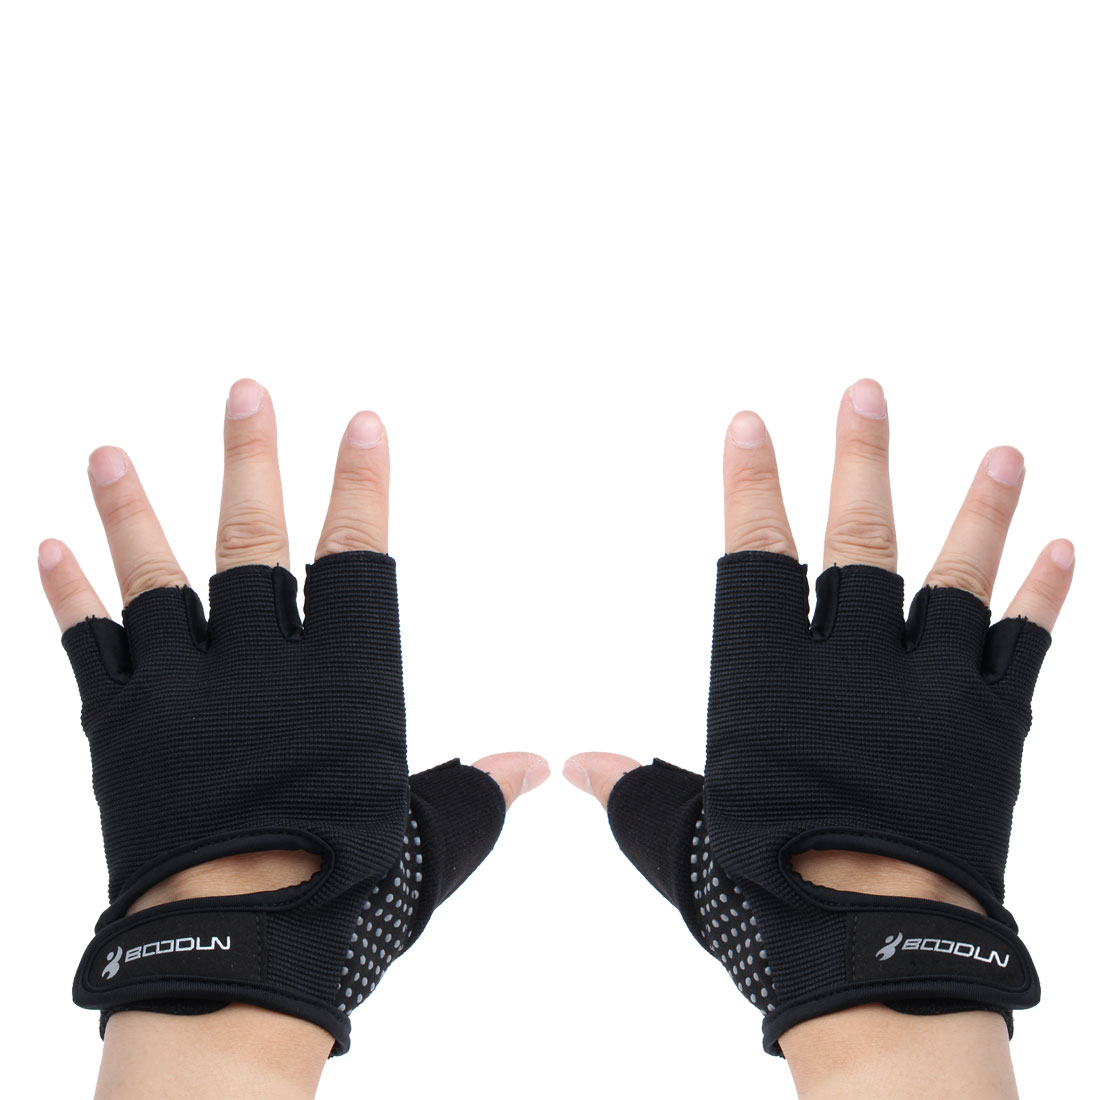 BOODUN Authorized Gym Workout Weight Lifting Training Adjustable Anti Slip Breathable Fitness Half Finger Gloves Black XL Size Pair